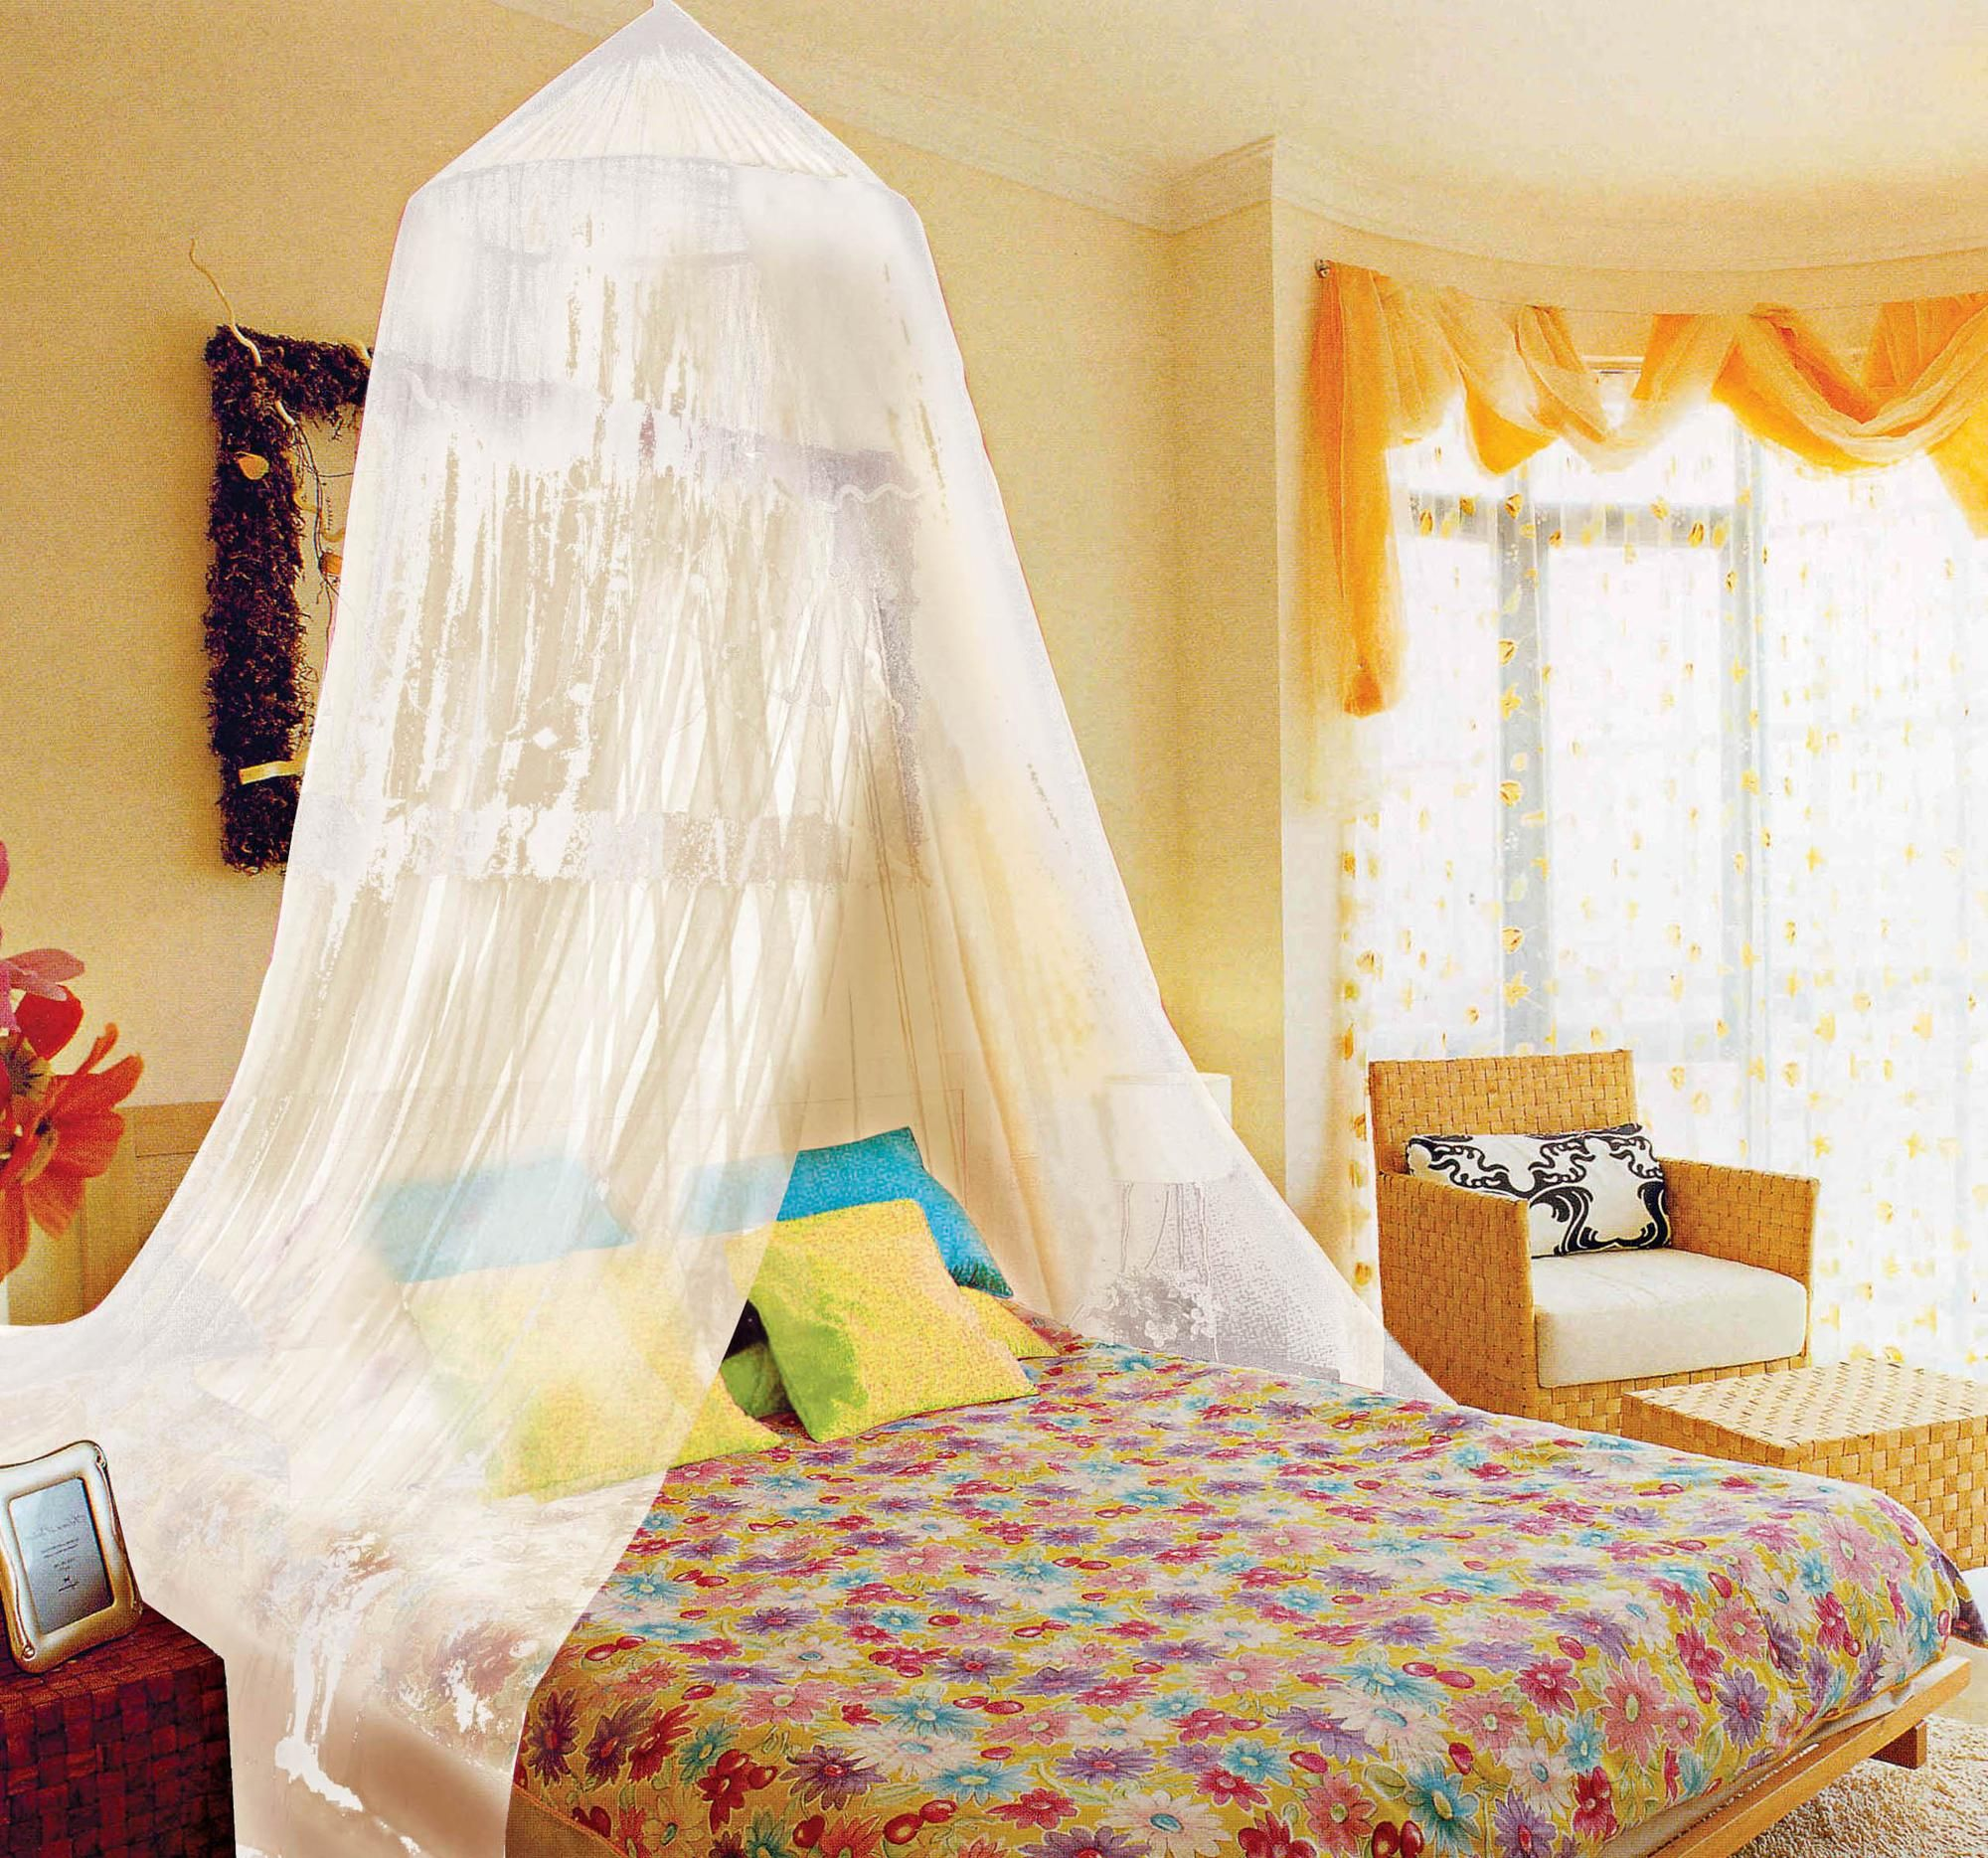 Kathy Ireland White Twin/Full Canopy Bed Netting Bed